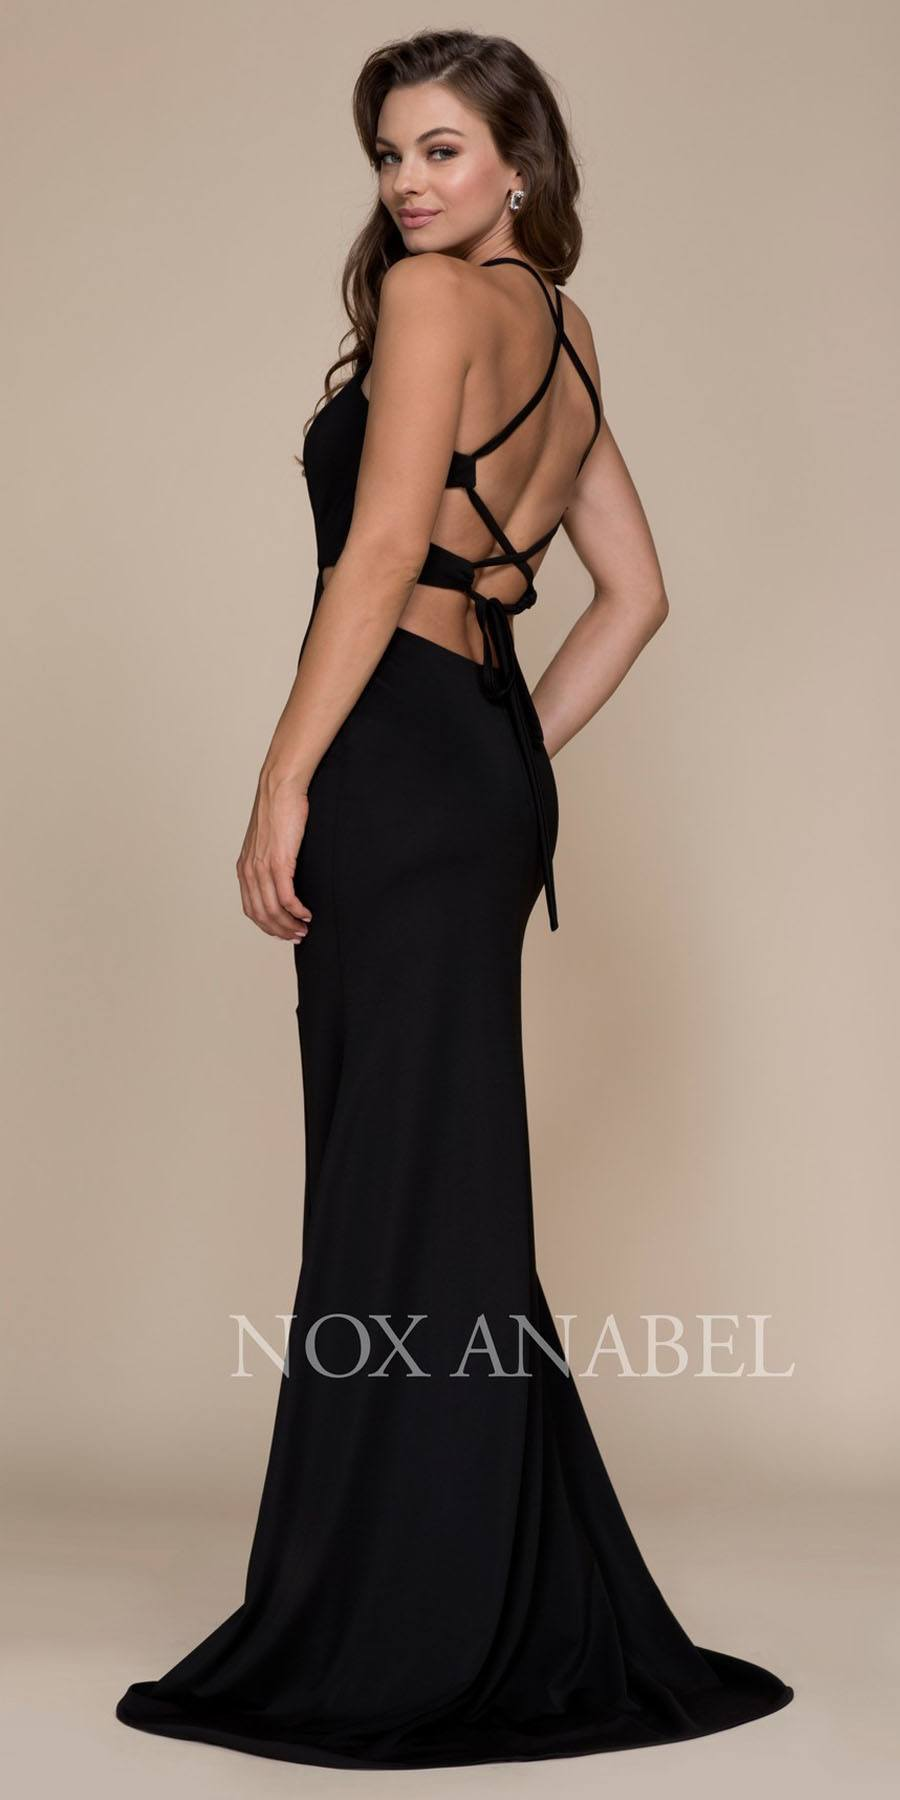 Nox Anabel C026 Black Halter Cut Out Long Prom Dress Strappy Back ...